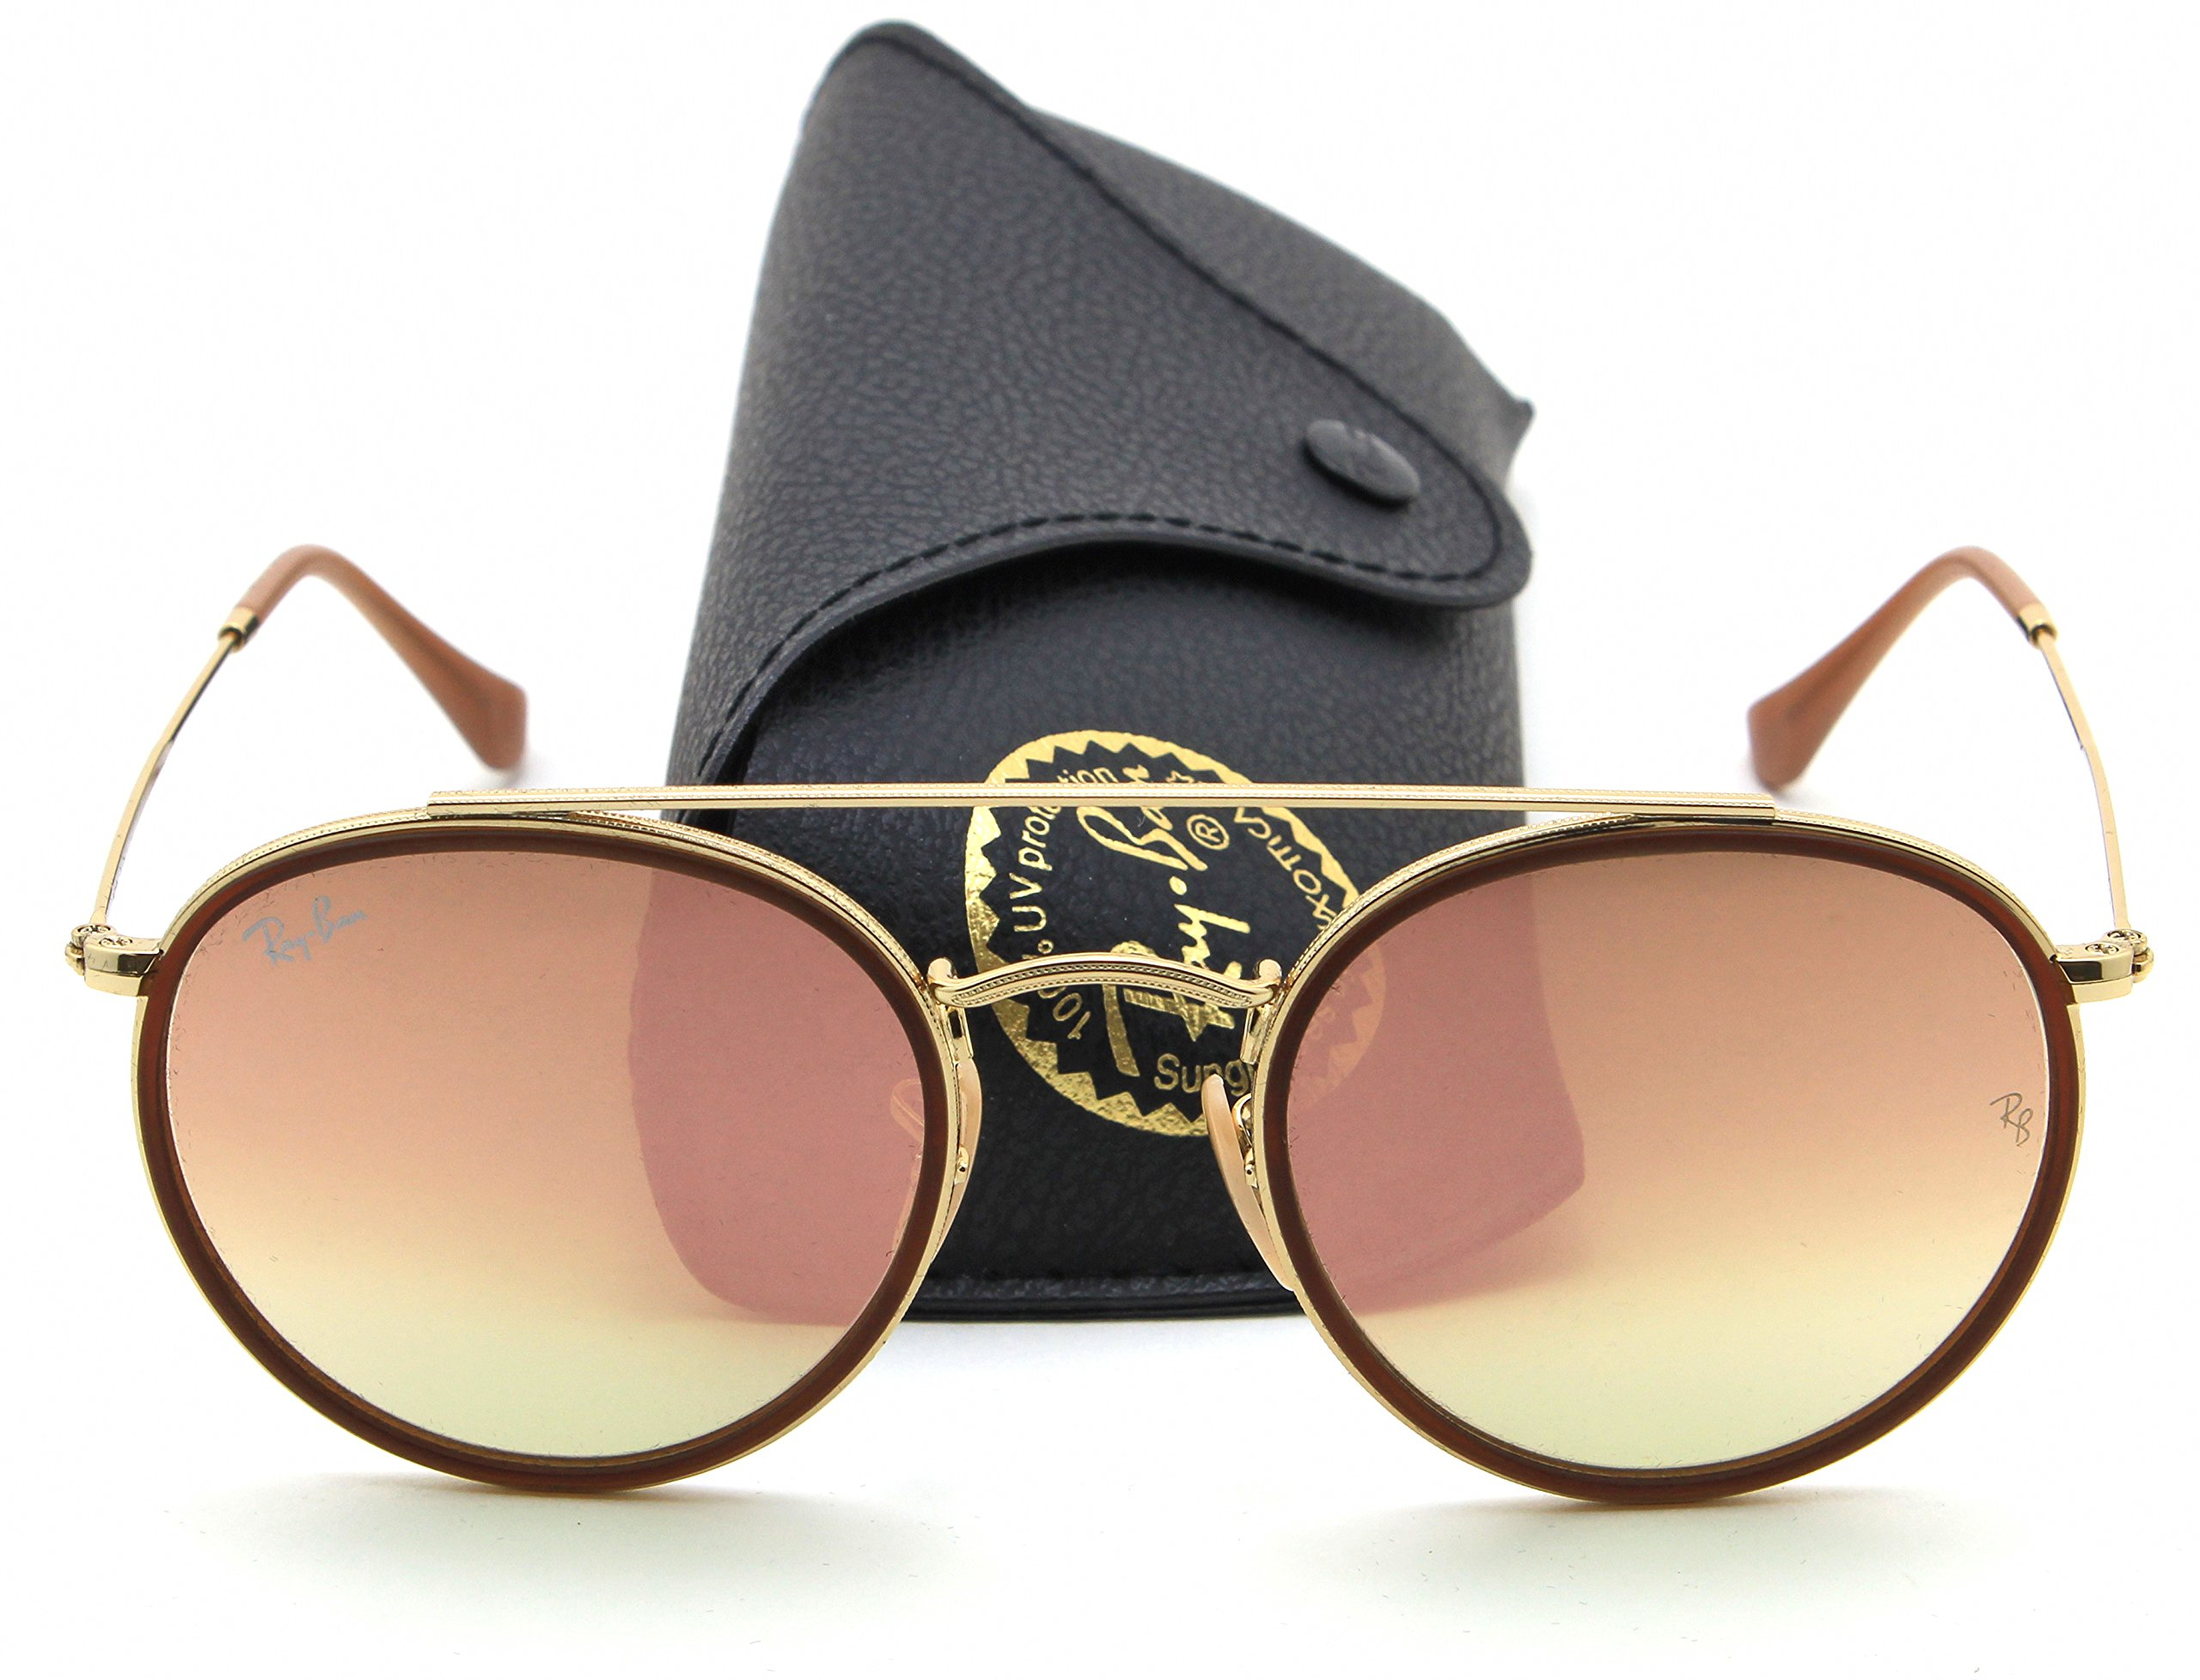 Ray Ban Round Double Bridge Top Deals   Lowest Price   SuperOffers.com 150f43544ad6